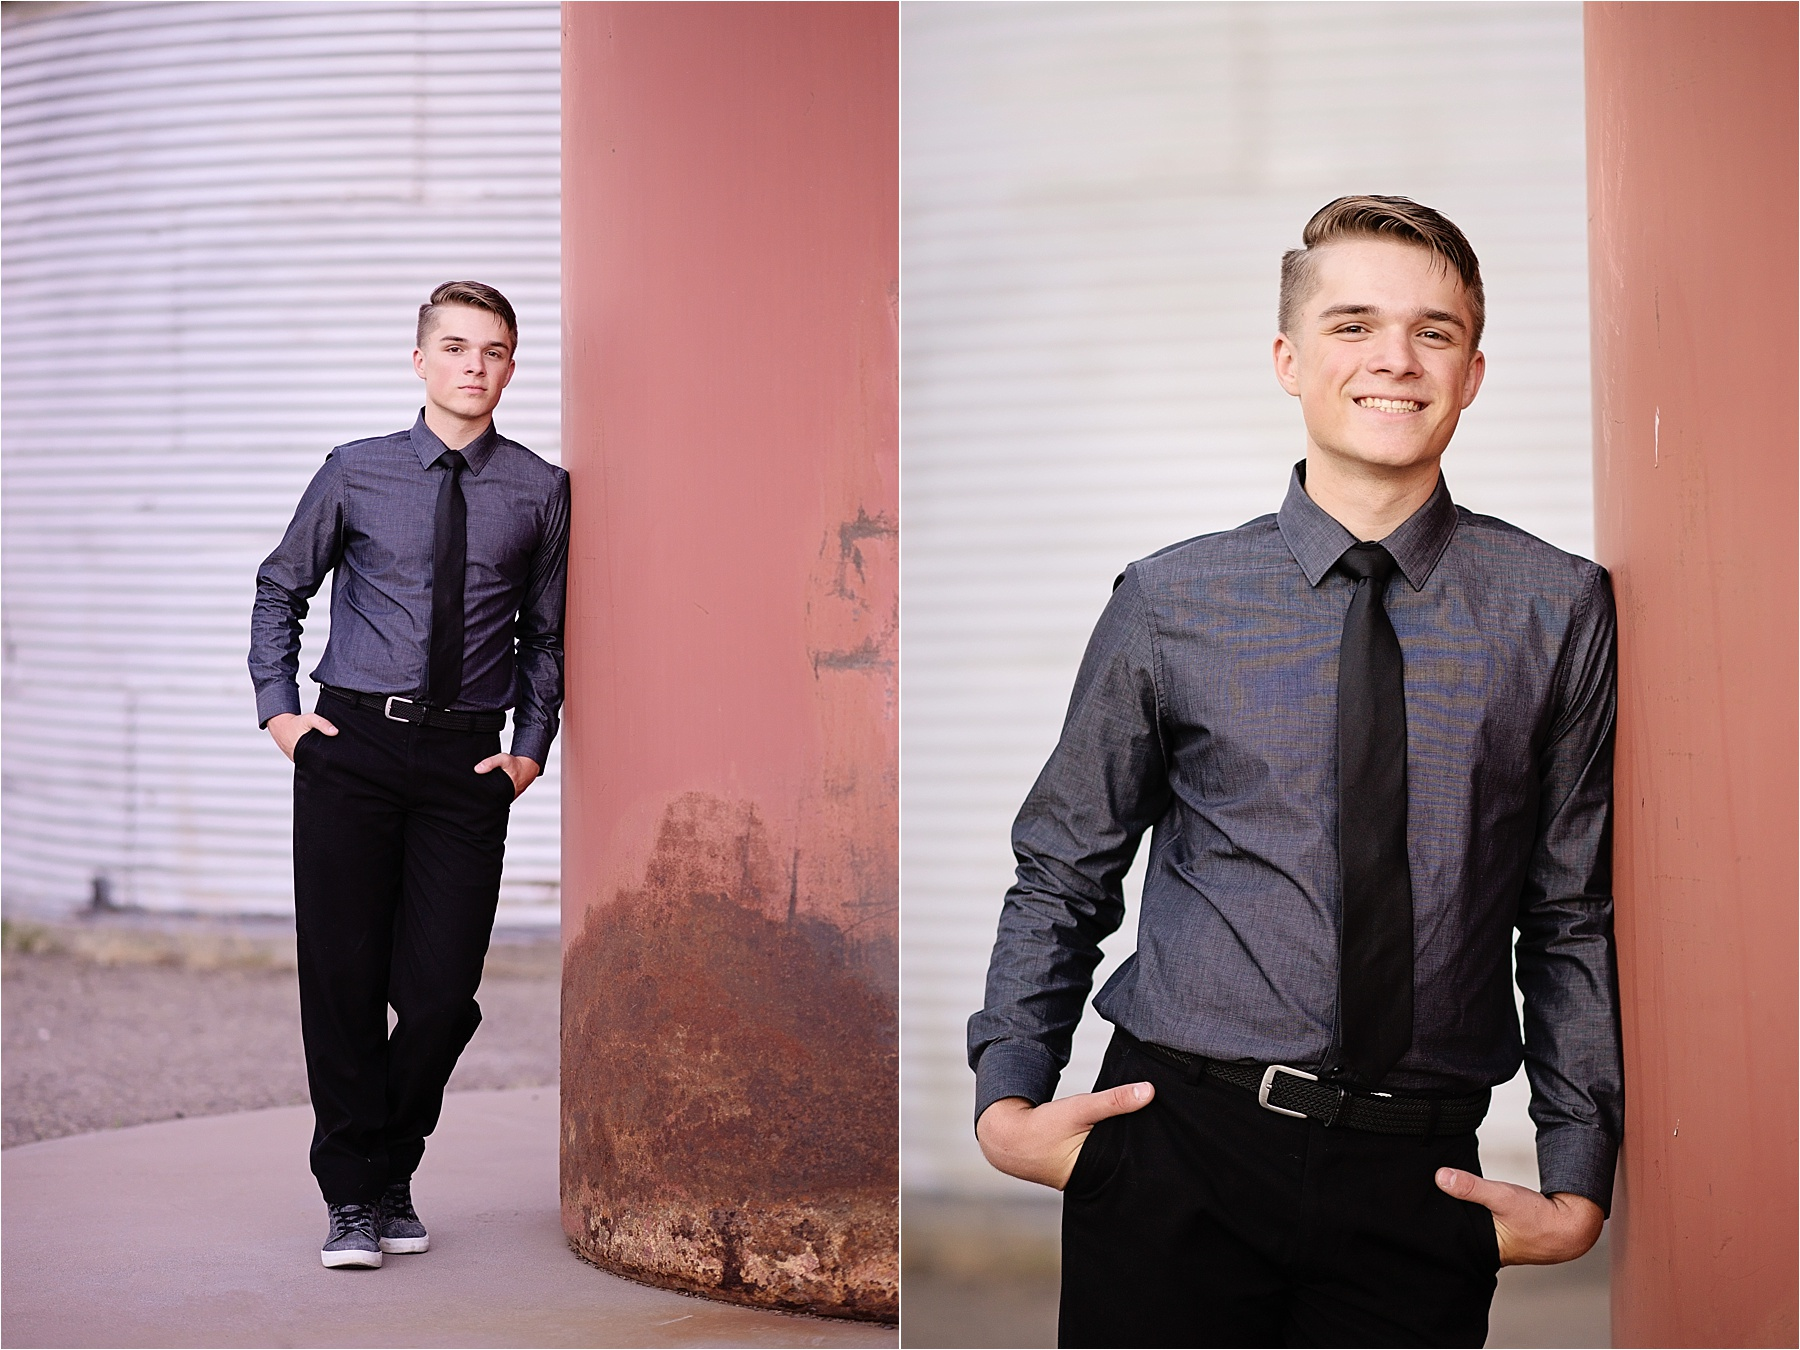 Grand Junction Photographer